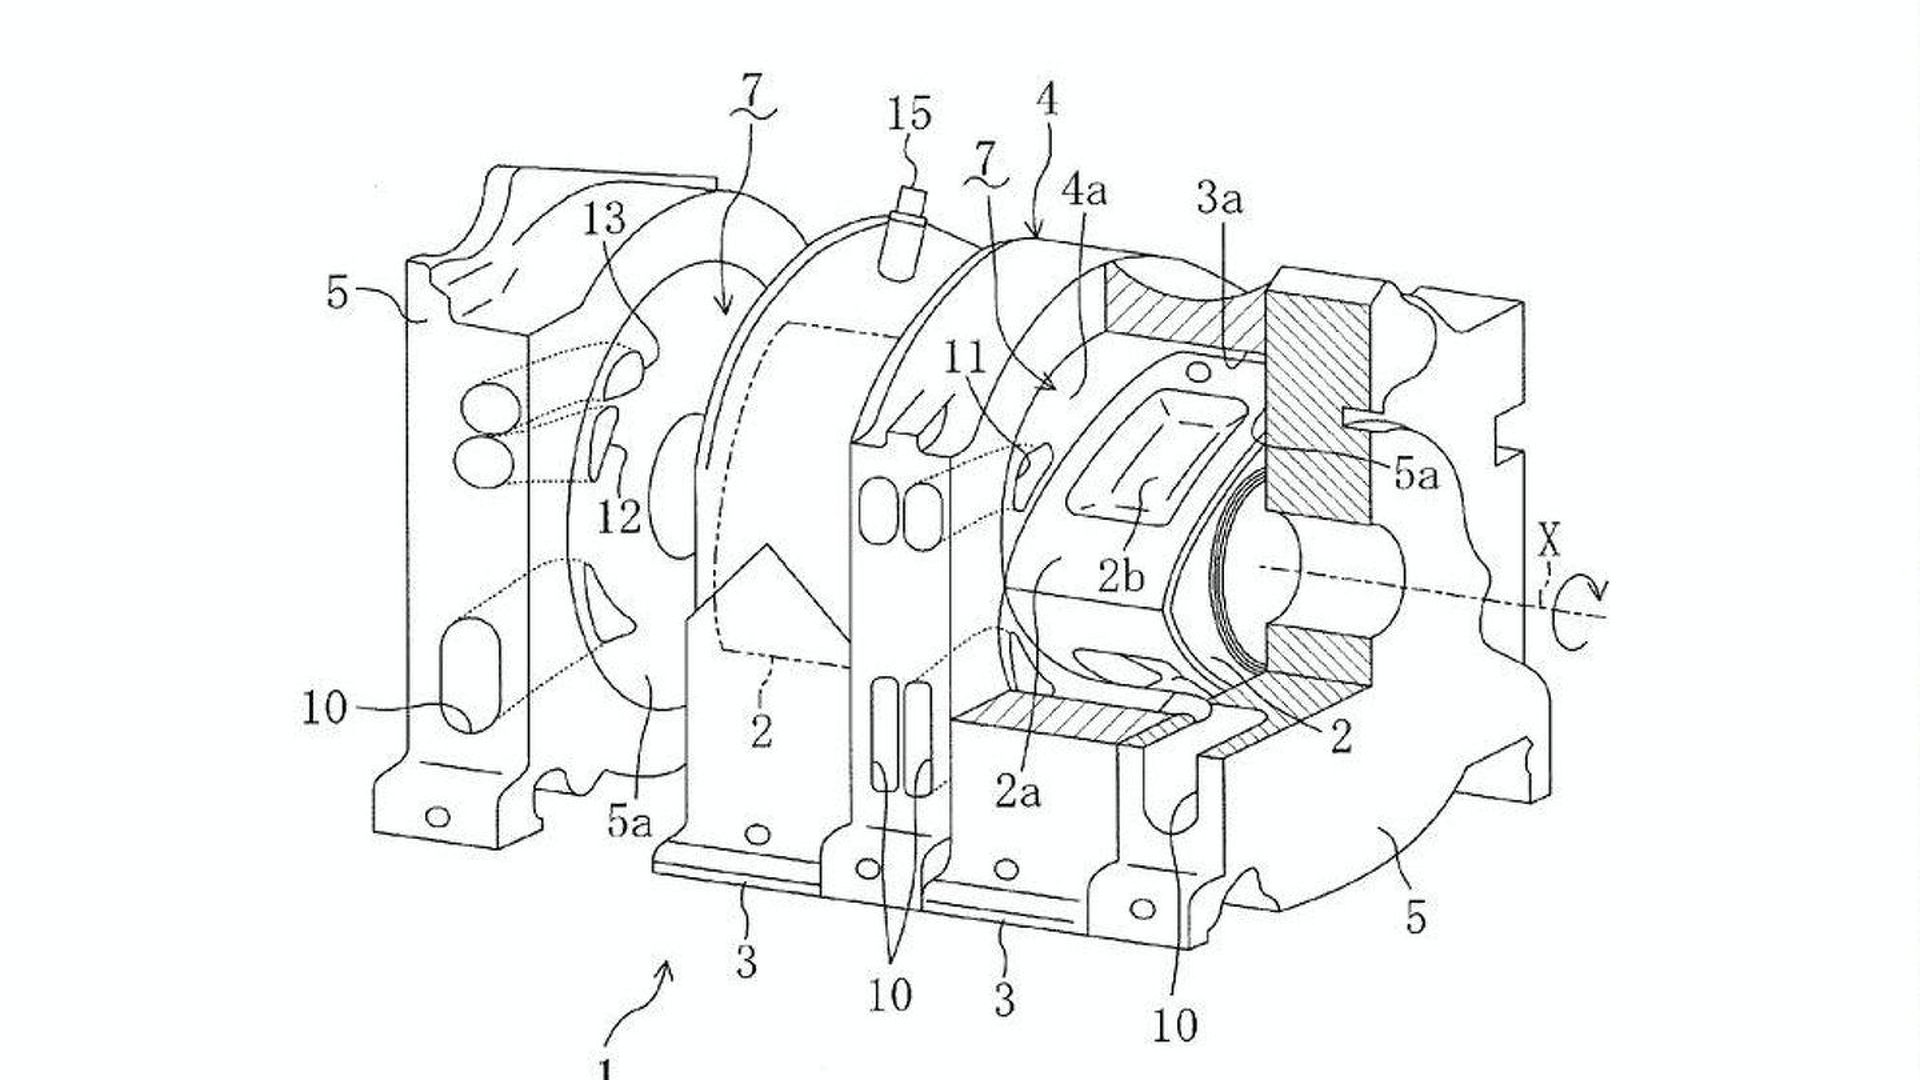 patent diagrams reveal direct injection mazda renesis rotary Mazda Rotary Engine Diagram direct injection mazda renesis rotary